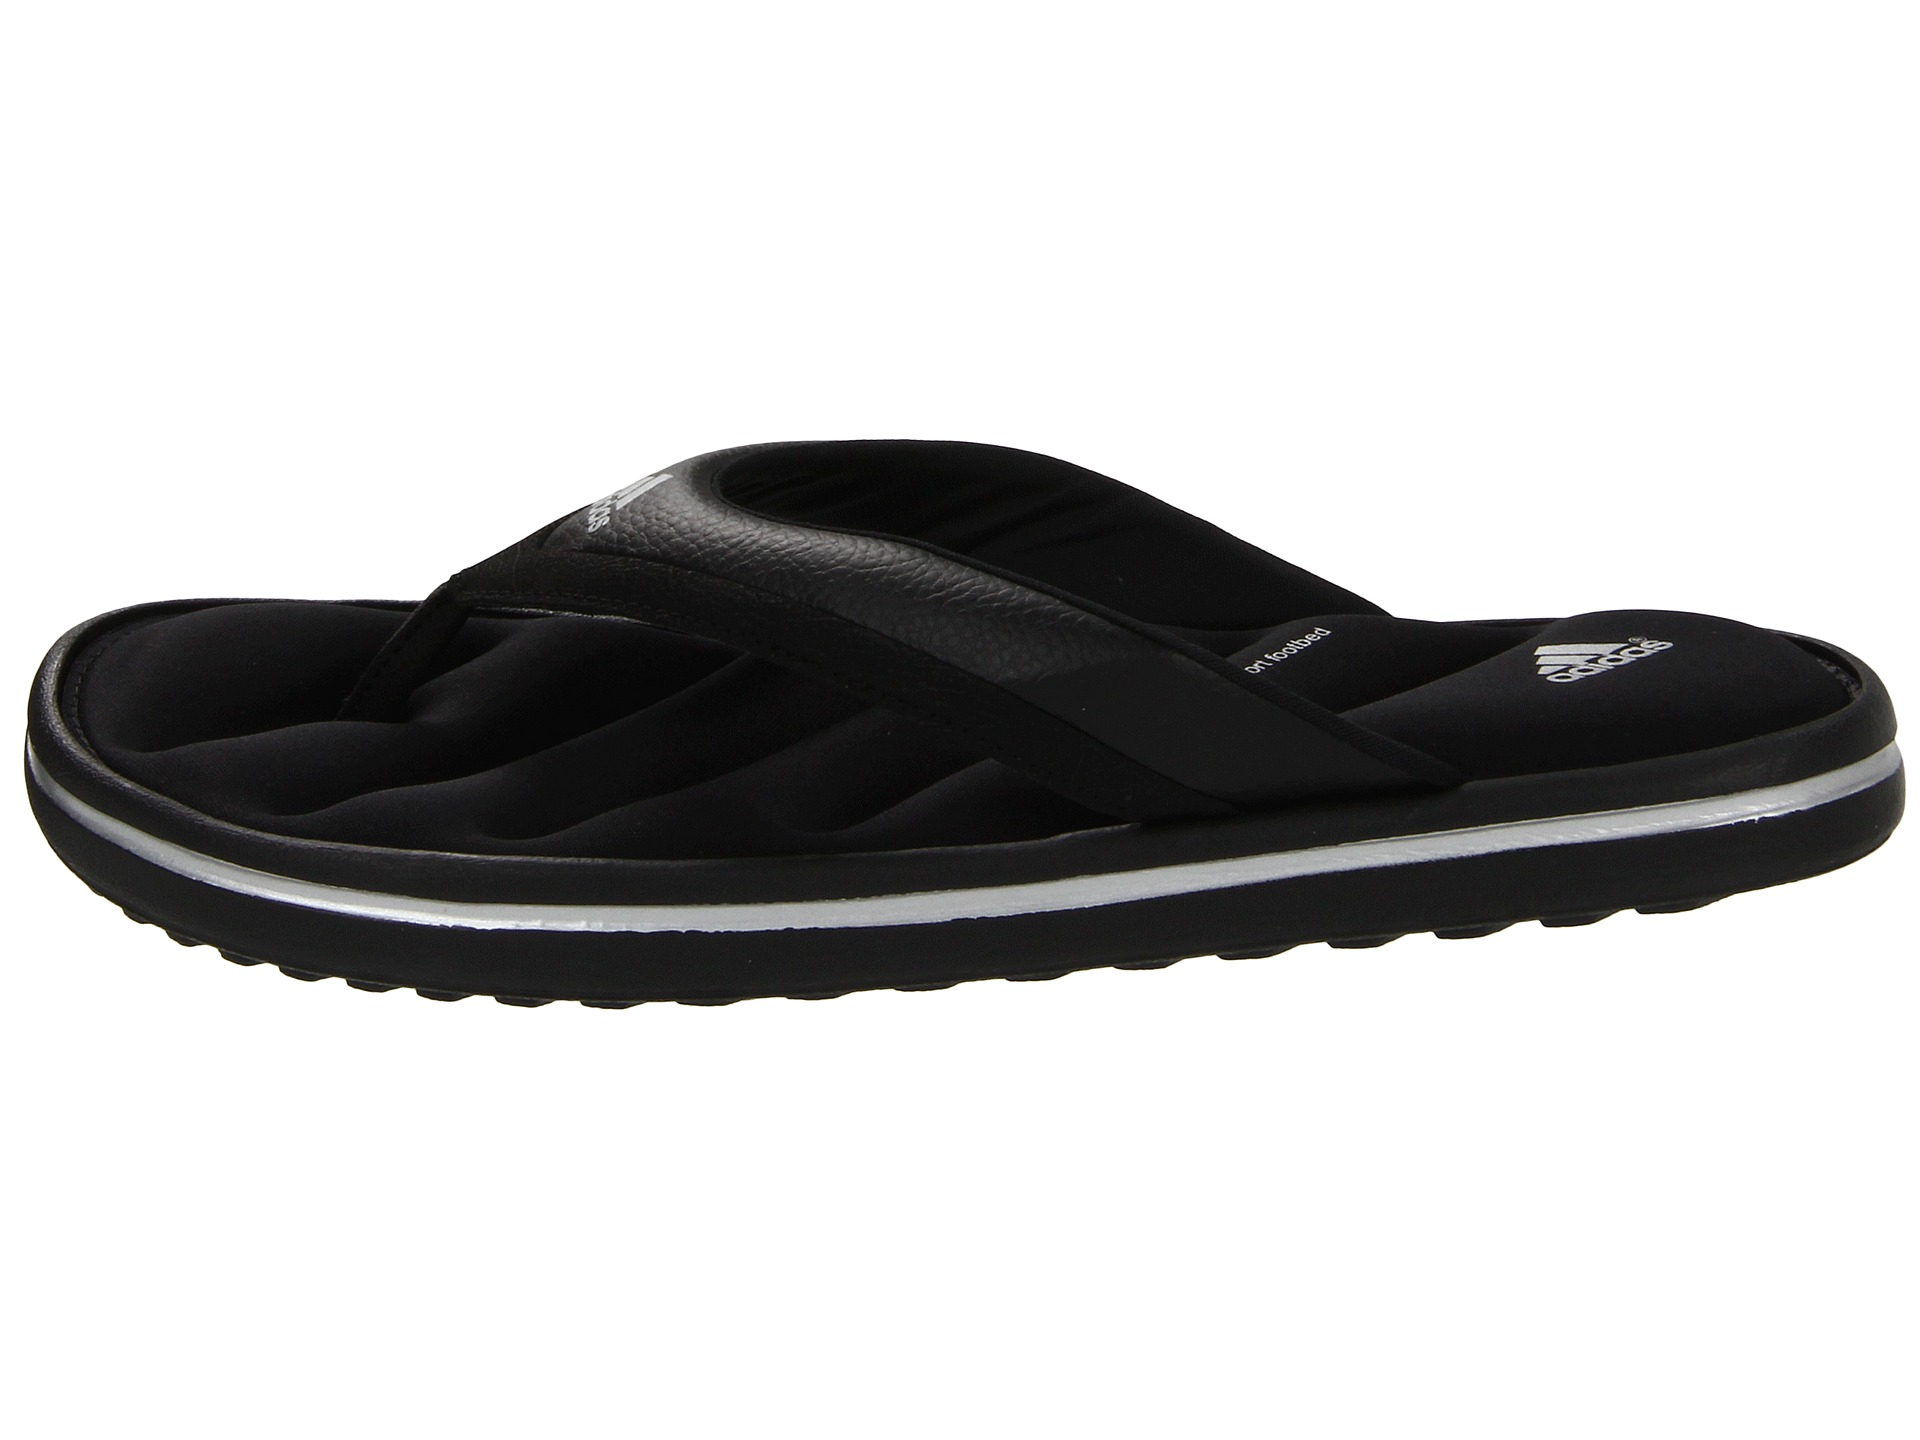 Cool ADIDAS THONG SANDALS US 7 WOMENS Soft Foam Footbed Black Pink  EBay